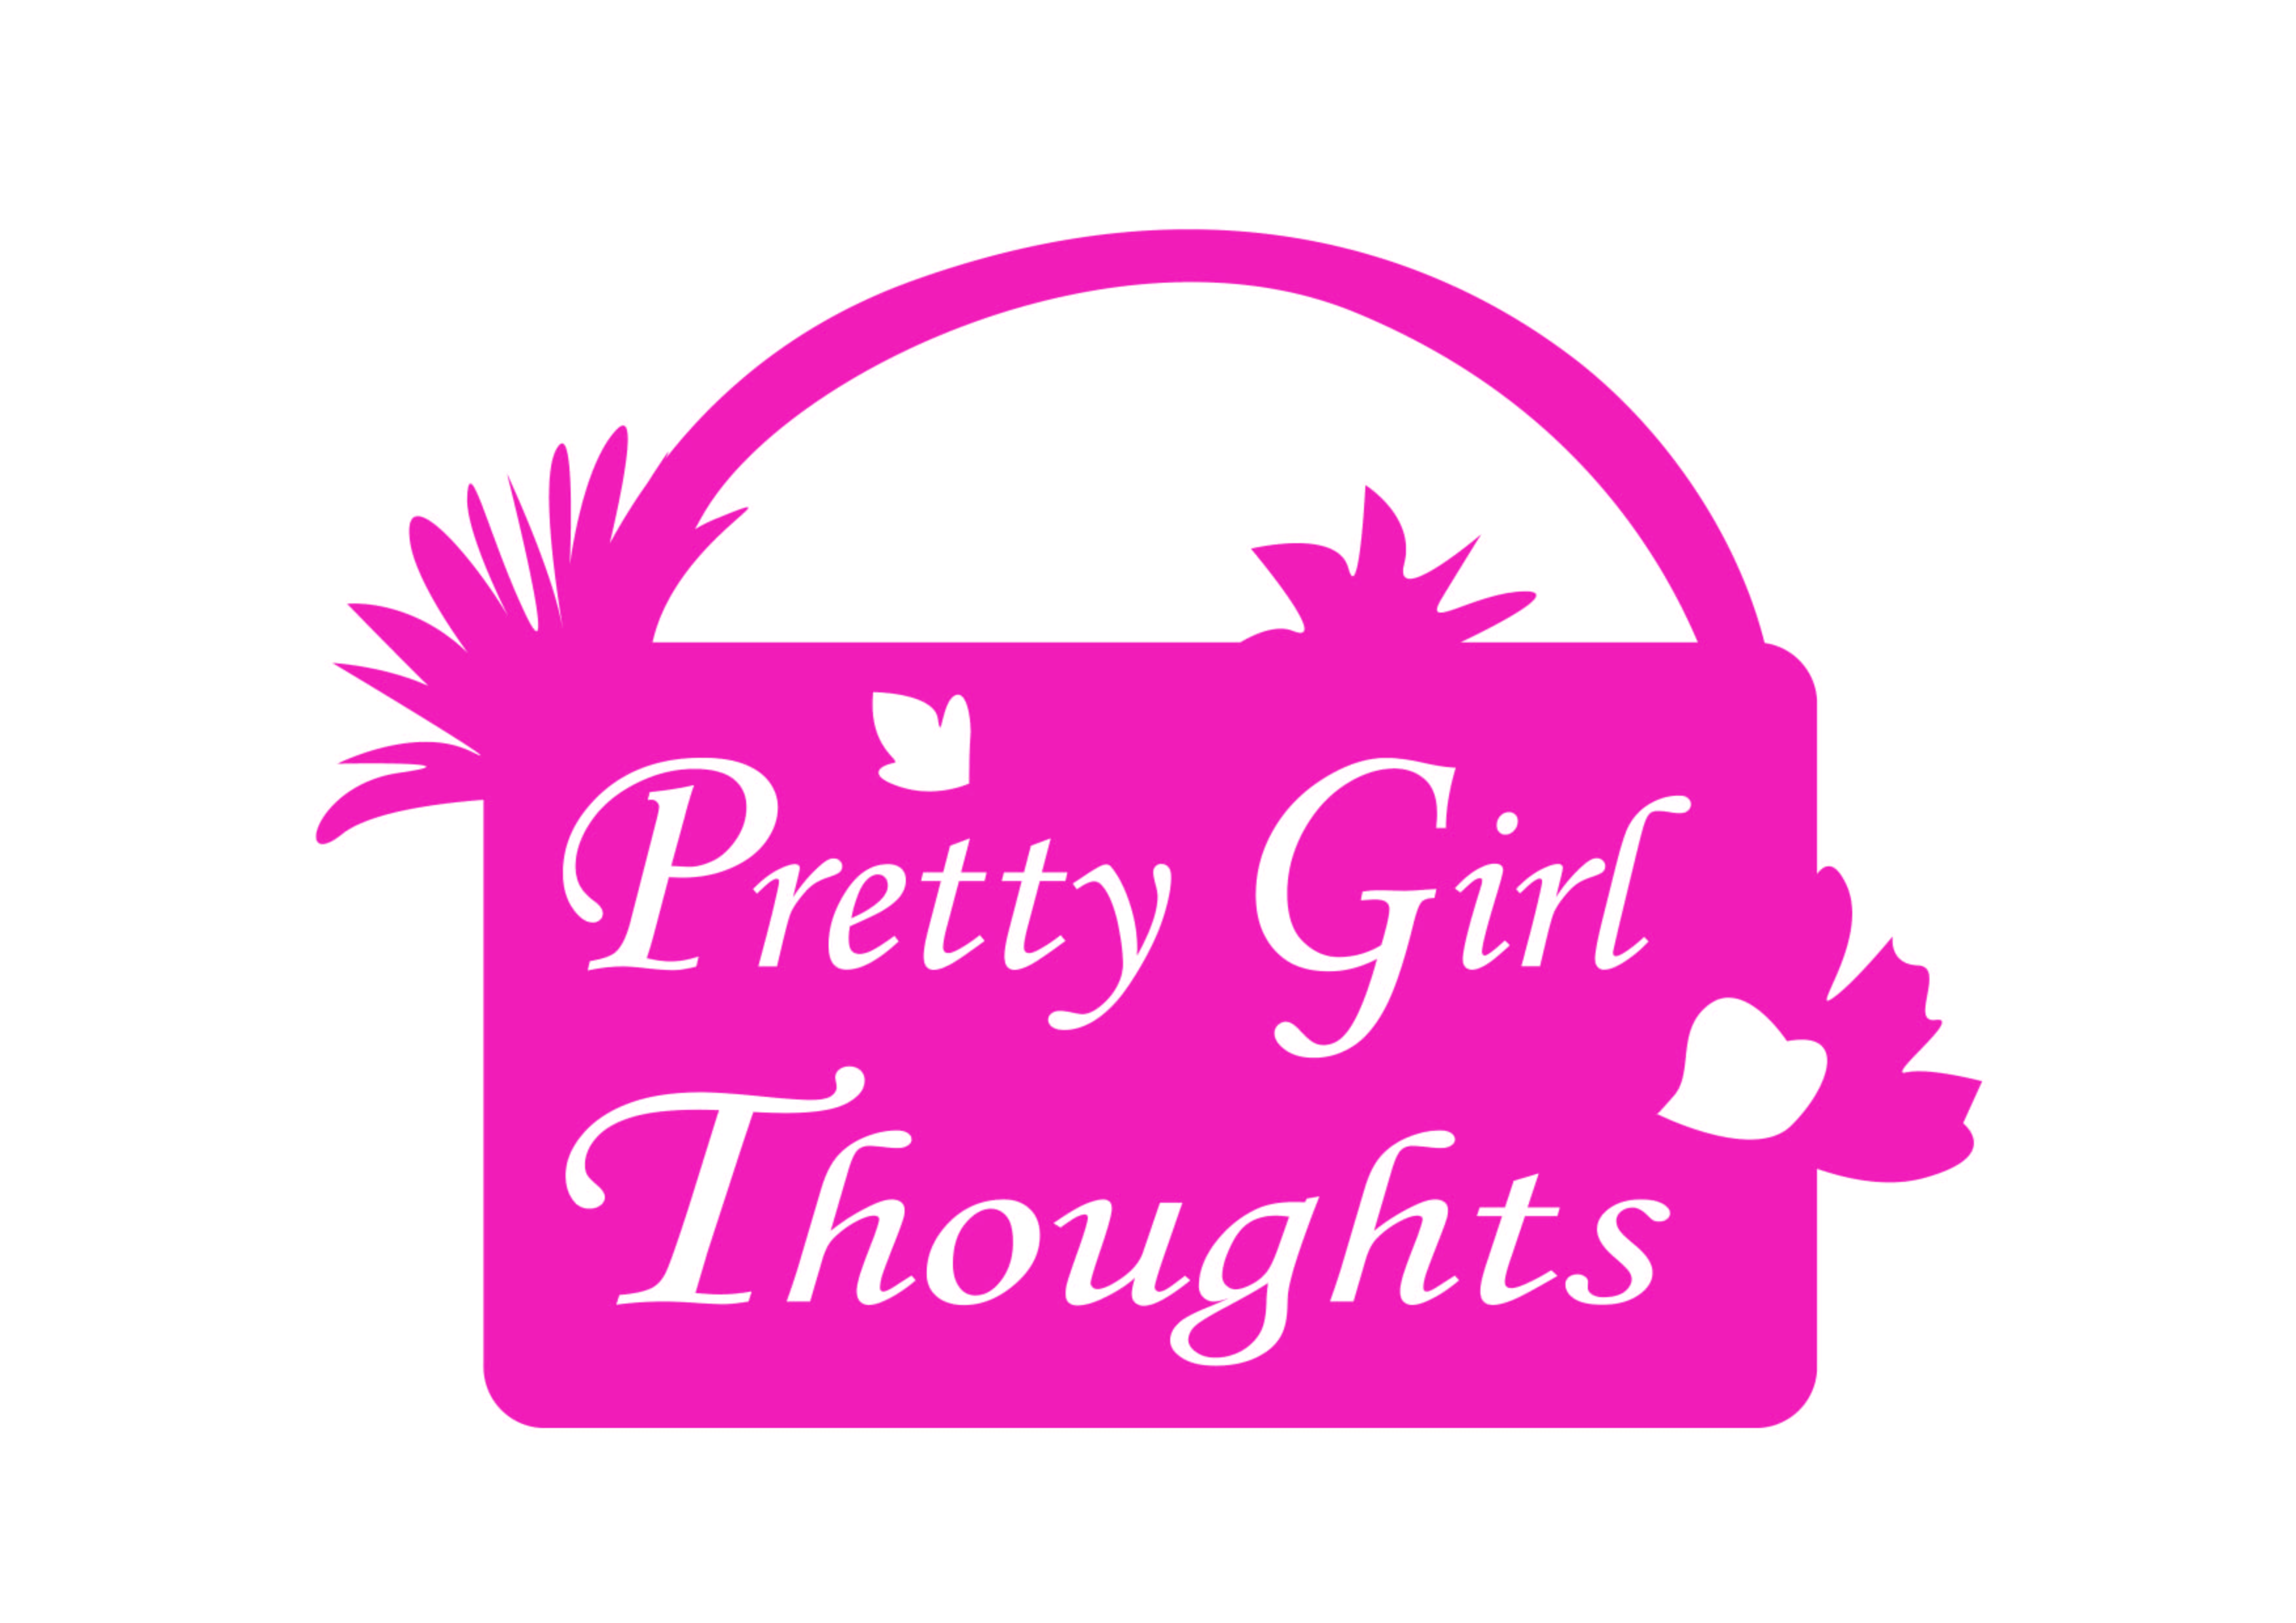 Logo Design by Nirmali Kaushalya - Entry No. 28 in the Logo Design Contest Inspiring Logo Design for Pretty Girl Thoughts.